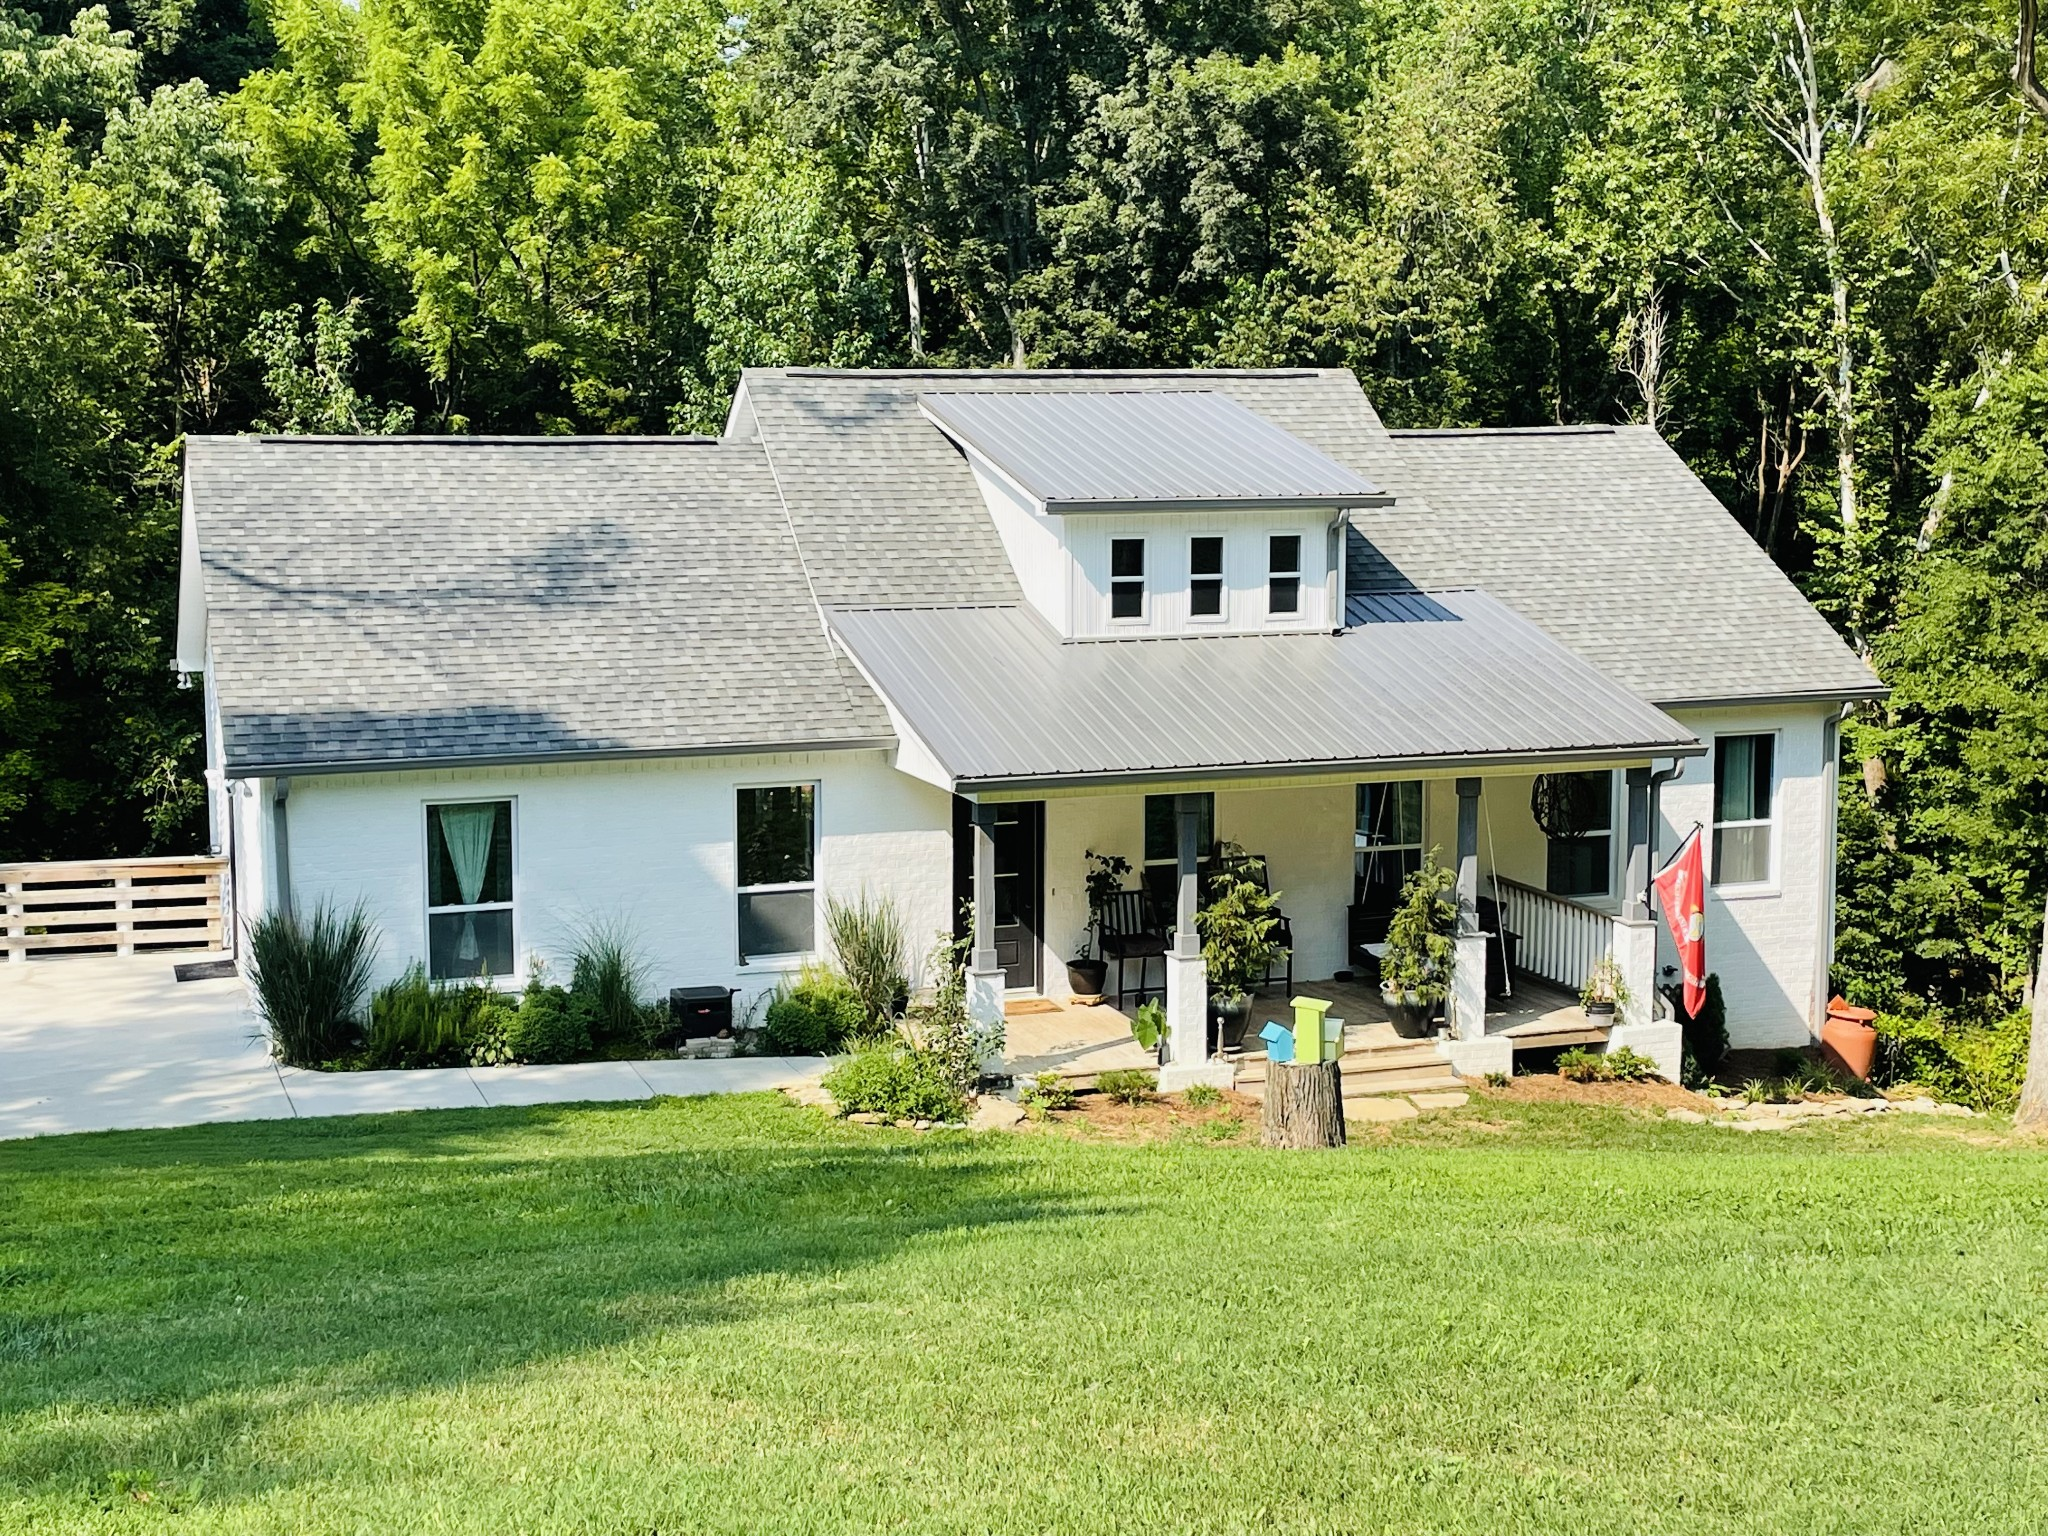 Look no further for your very own Custom Farmhouse on a quiet street. This home features an open floor plan with coffered ceilings, and large vaulted ceiling in living room. Custom cabinets with large island. Master suite on main floor, with custom built closet. Home has two 16x16 decks, overlooking the woods and creek, to entertain your guests or just to relax. Home is a half mile from old hickory lake boat ramps. Professional Photos coming soon!